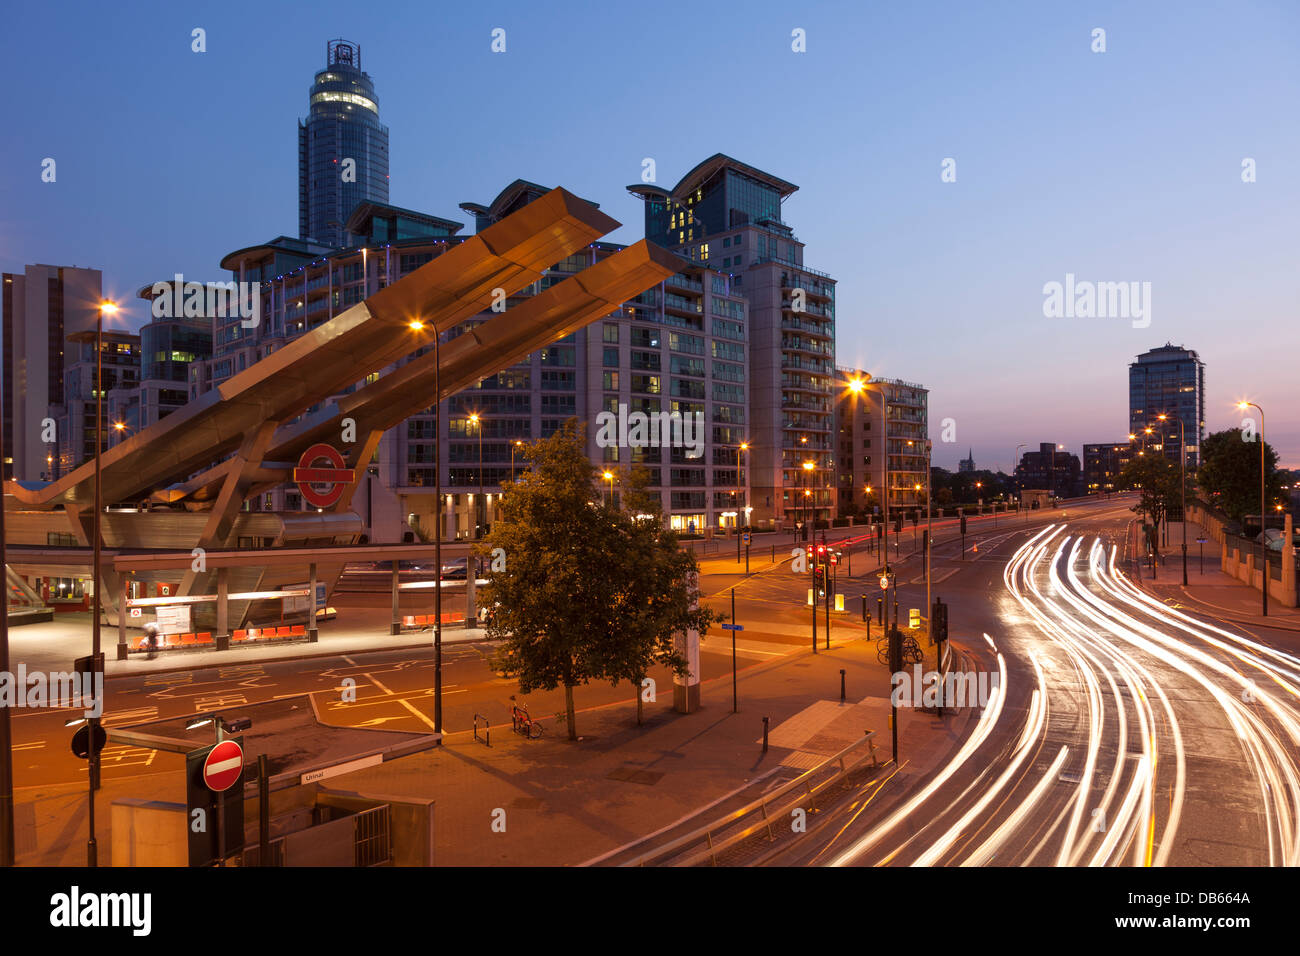 Vauxhall junction at night,London,England - Stock Image